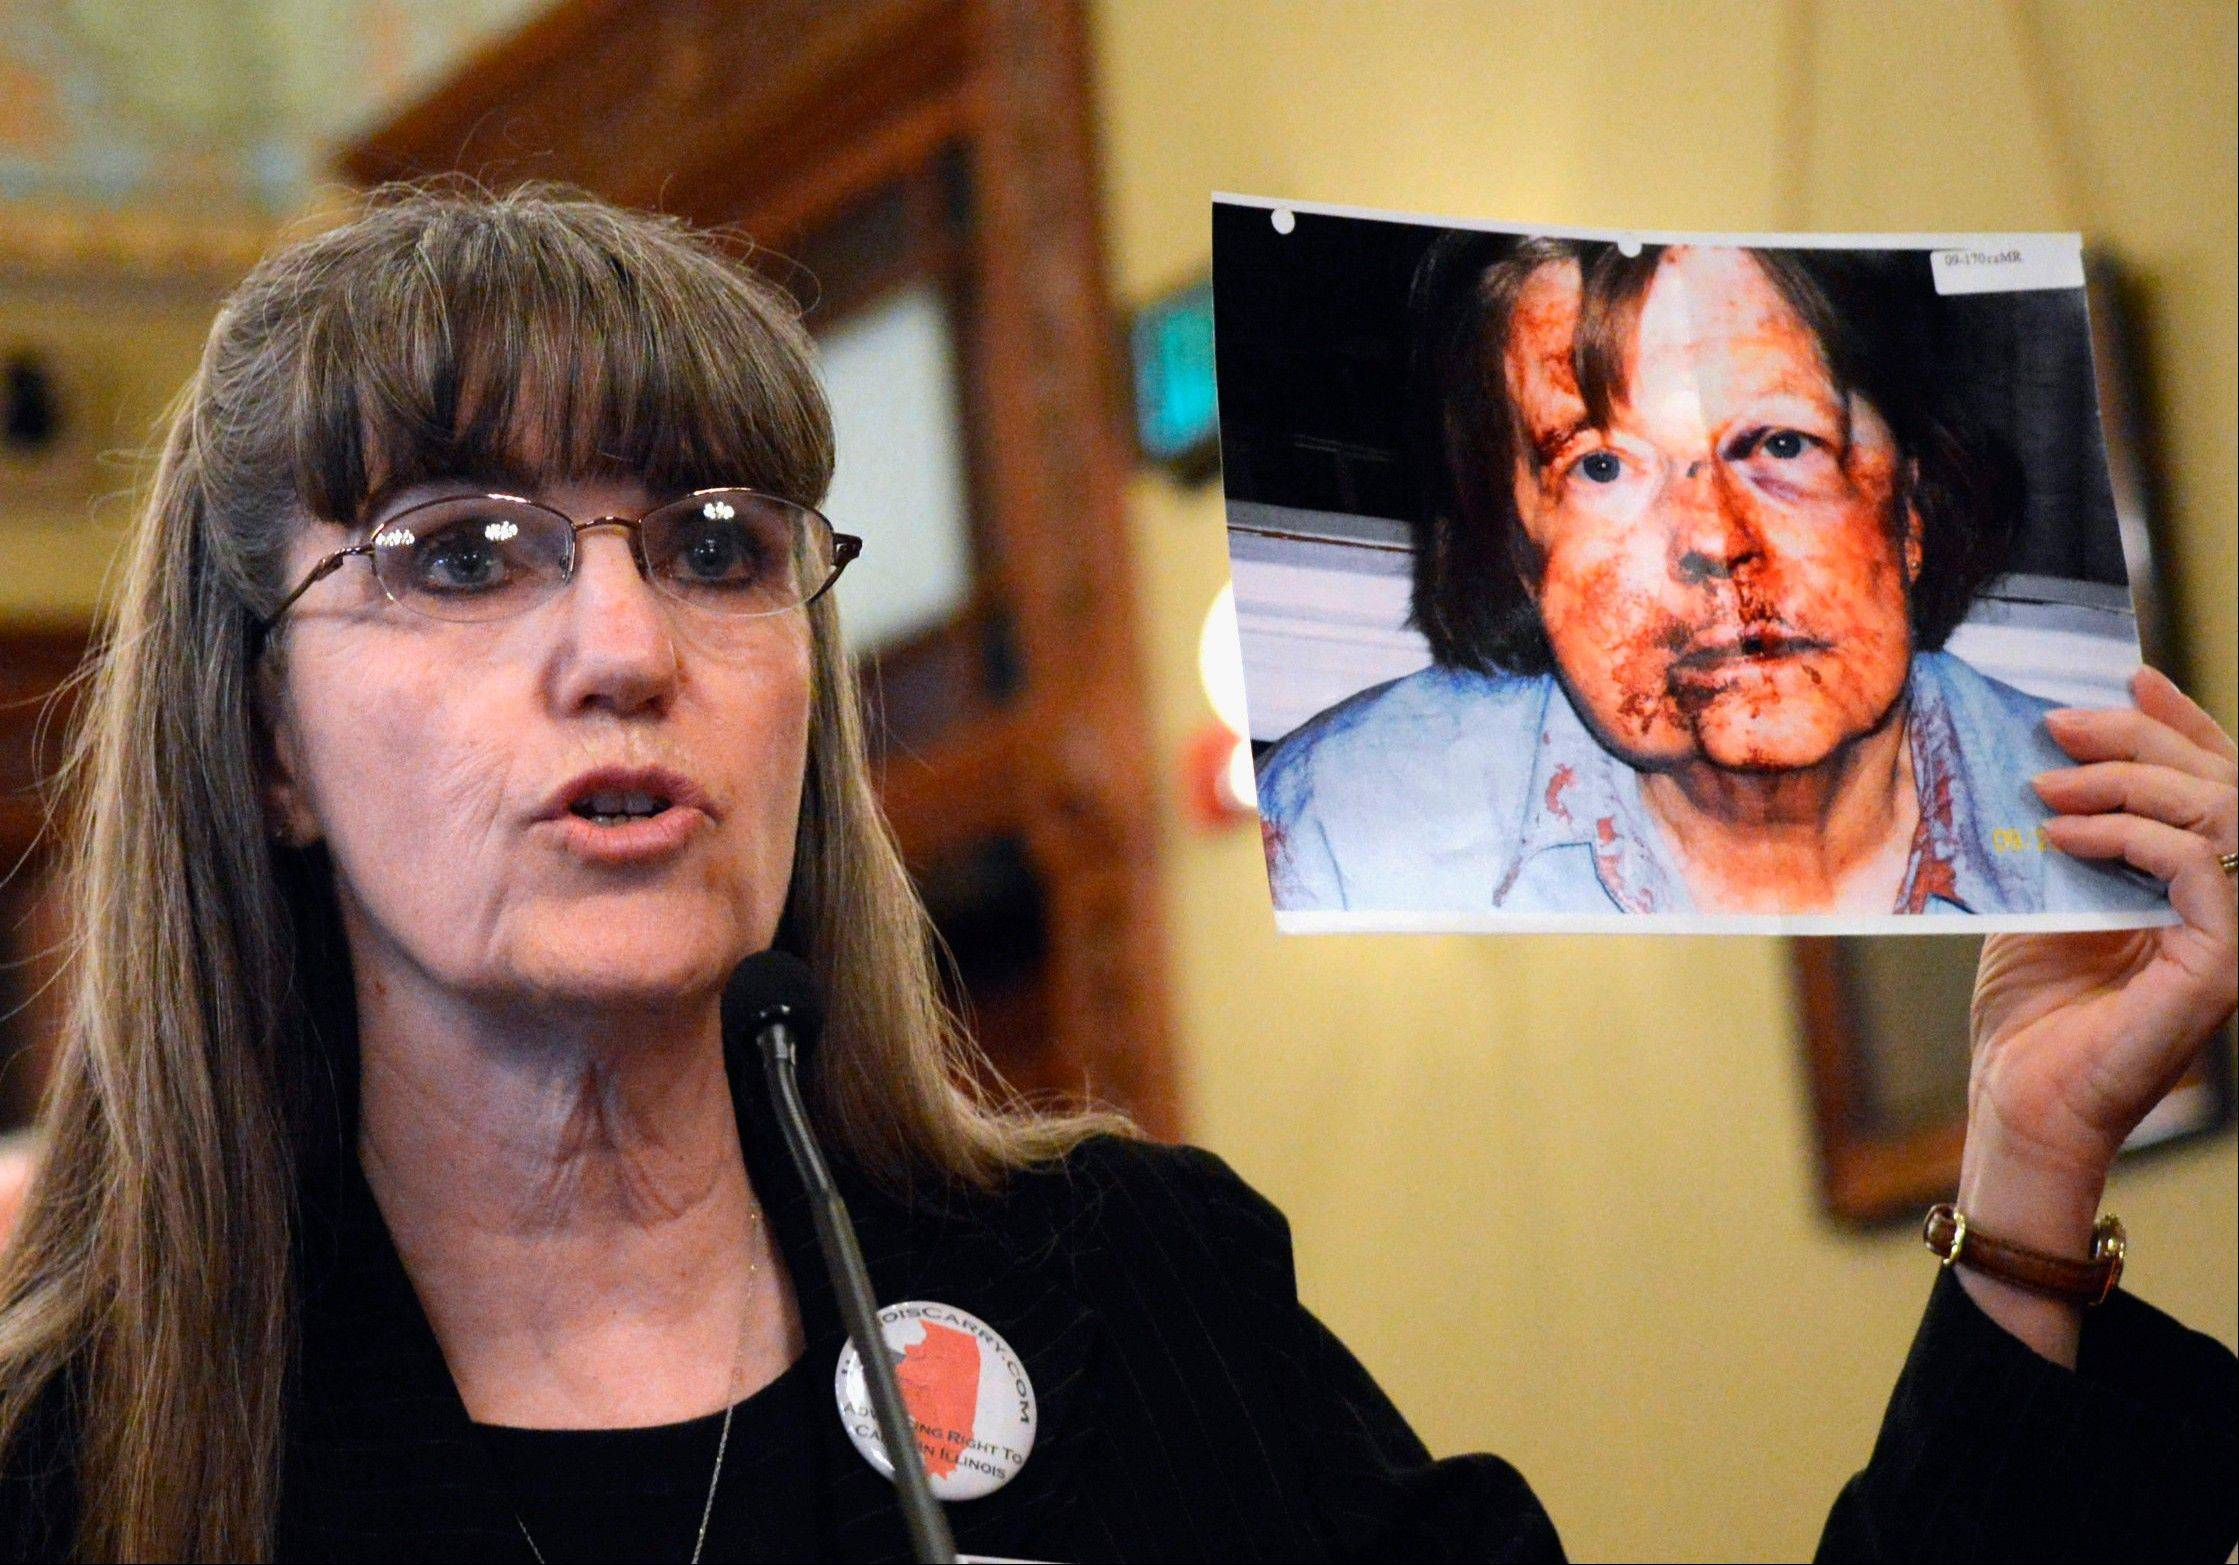 Valinda Rowe, spokeswoman for Illinois Carry, holds a photograph of Mary Shepard, a downstate woman who was beaten in 2009 by an intruder at her workplace. Shepard has said that had she not been barred from carrying a gun, she could have thwarted the attack.